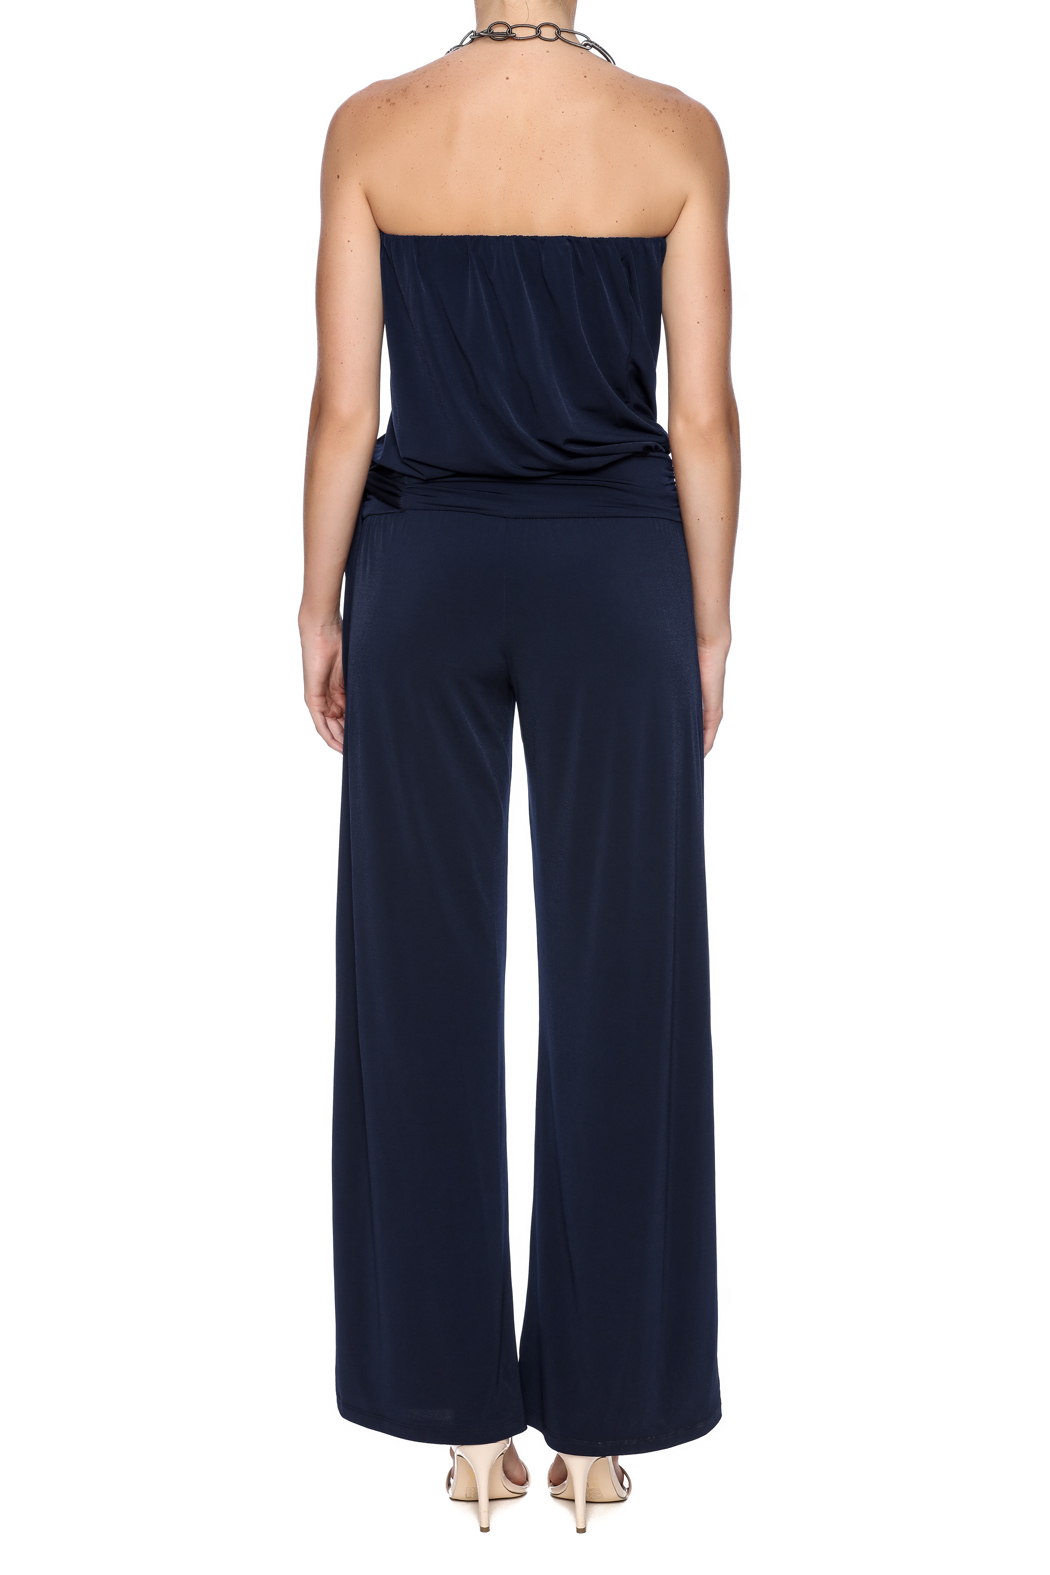 Veronica M Navy Jumpsuit - Back Cropped Image